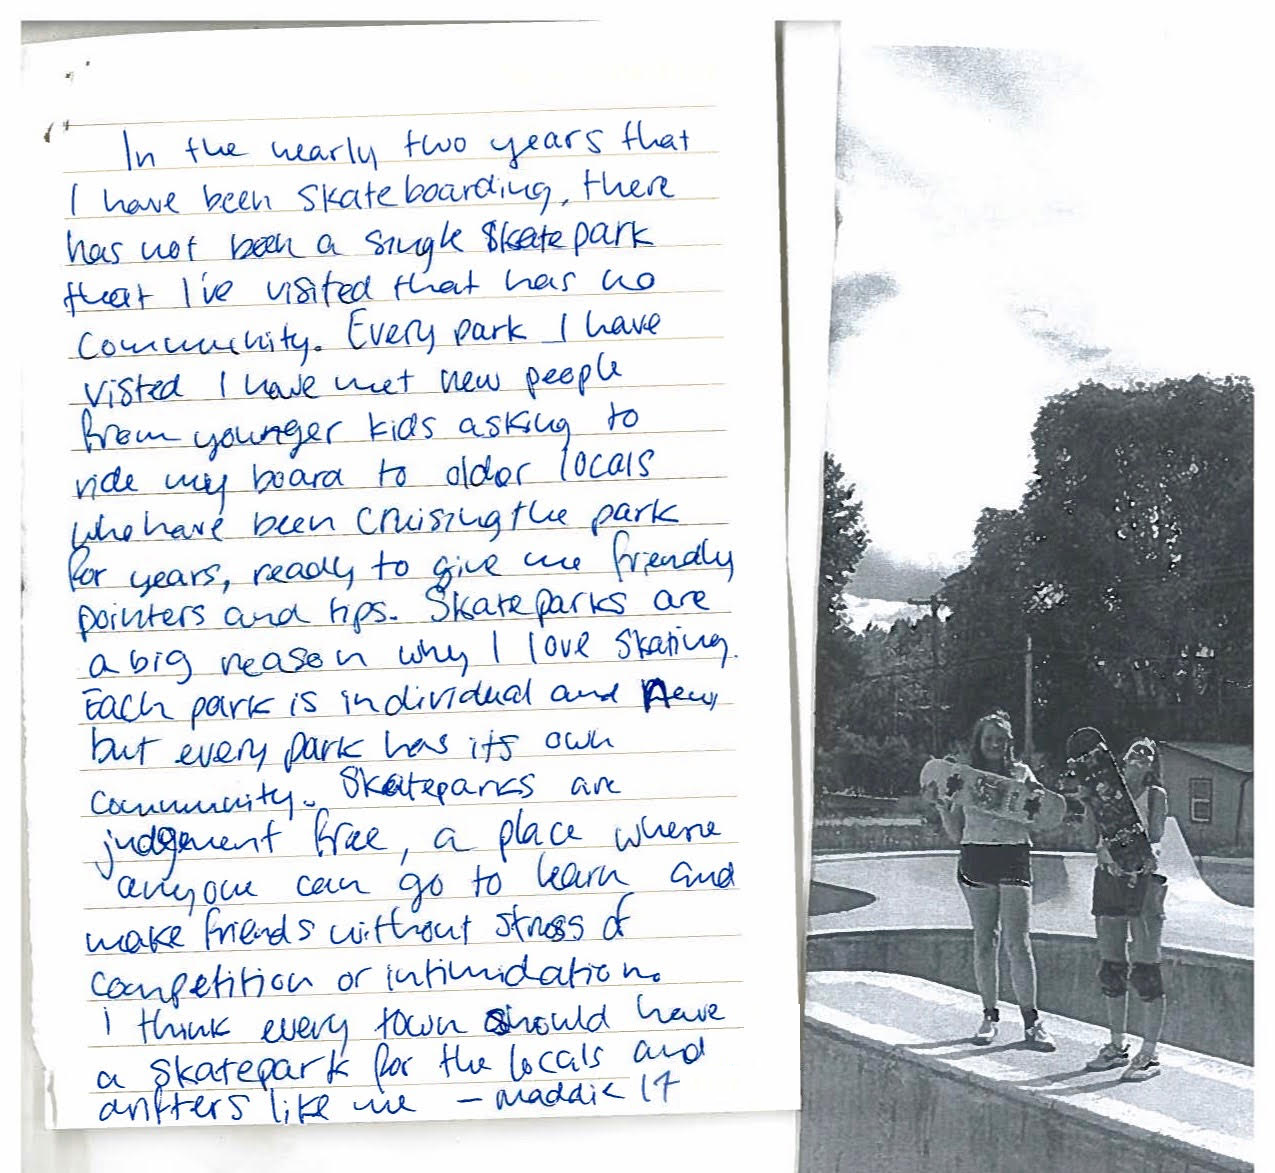 Written letter of support from a teen with description of why skating is important to the author, and a photo of two teenage girls holding skateboards at a skate park.